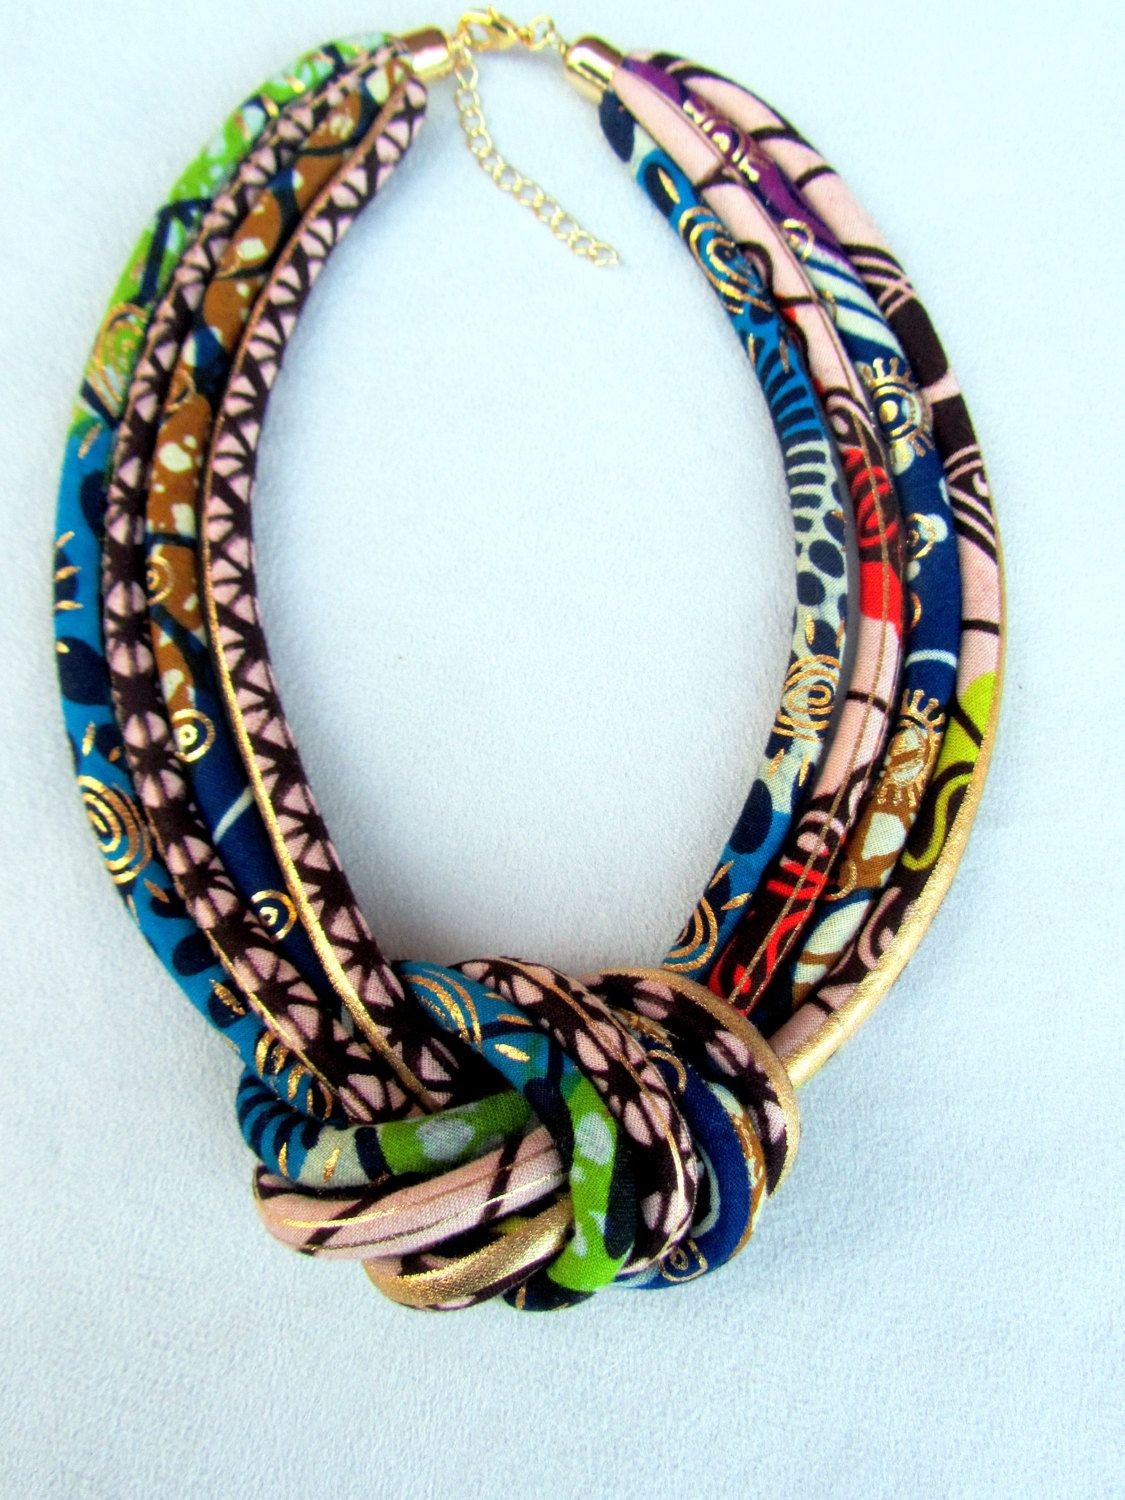 African Fashion fabric bib necklace, african wax golden metalic print with a central knot . #africanfashion